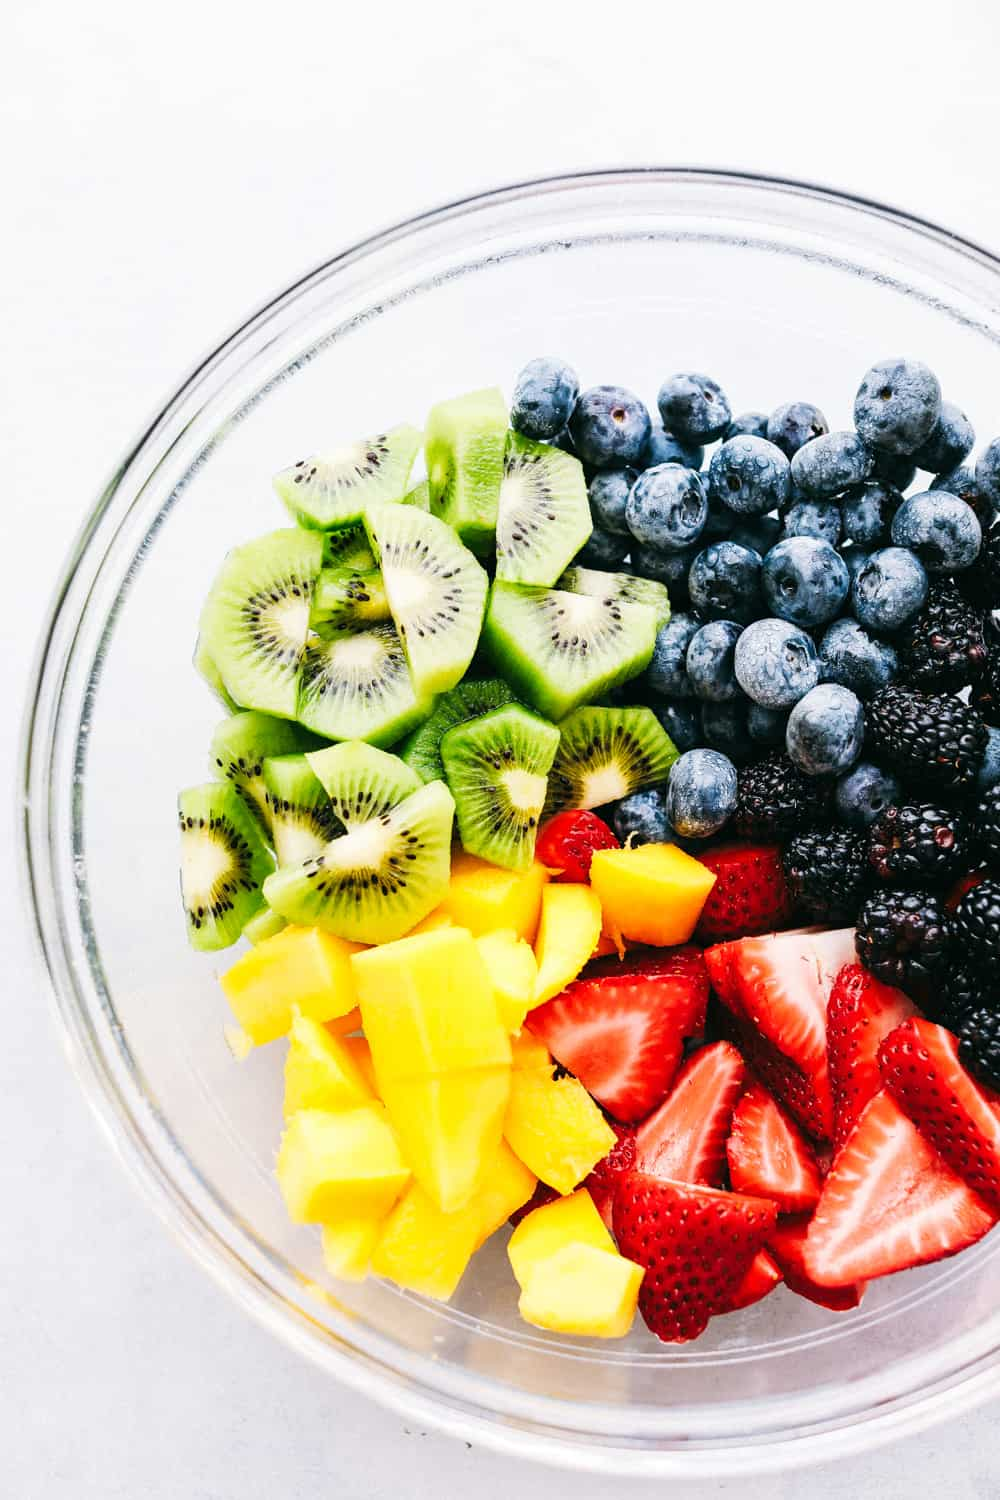 Fruit salad ingredients in a bowl before they are mixed.